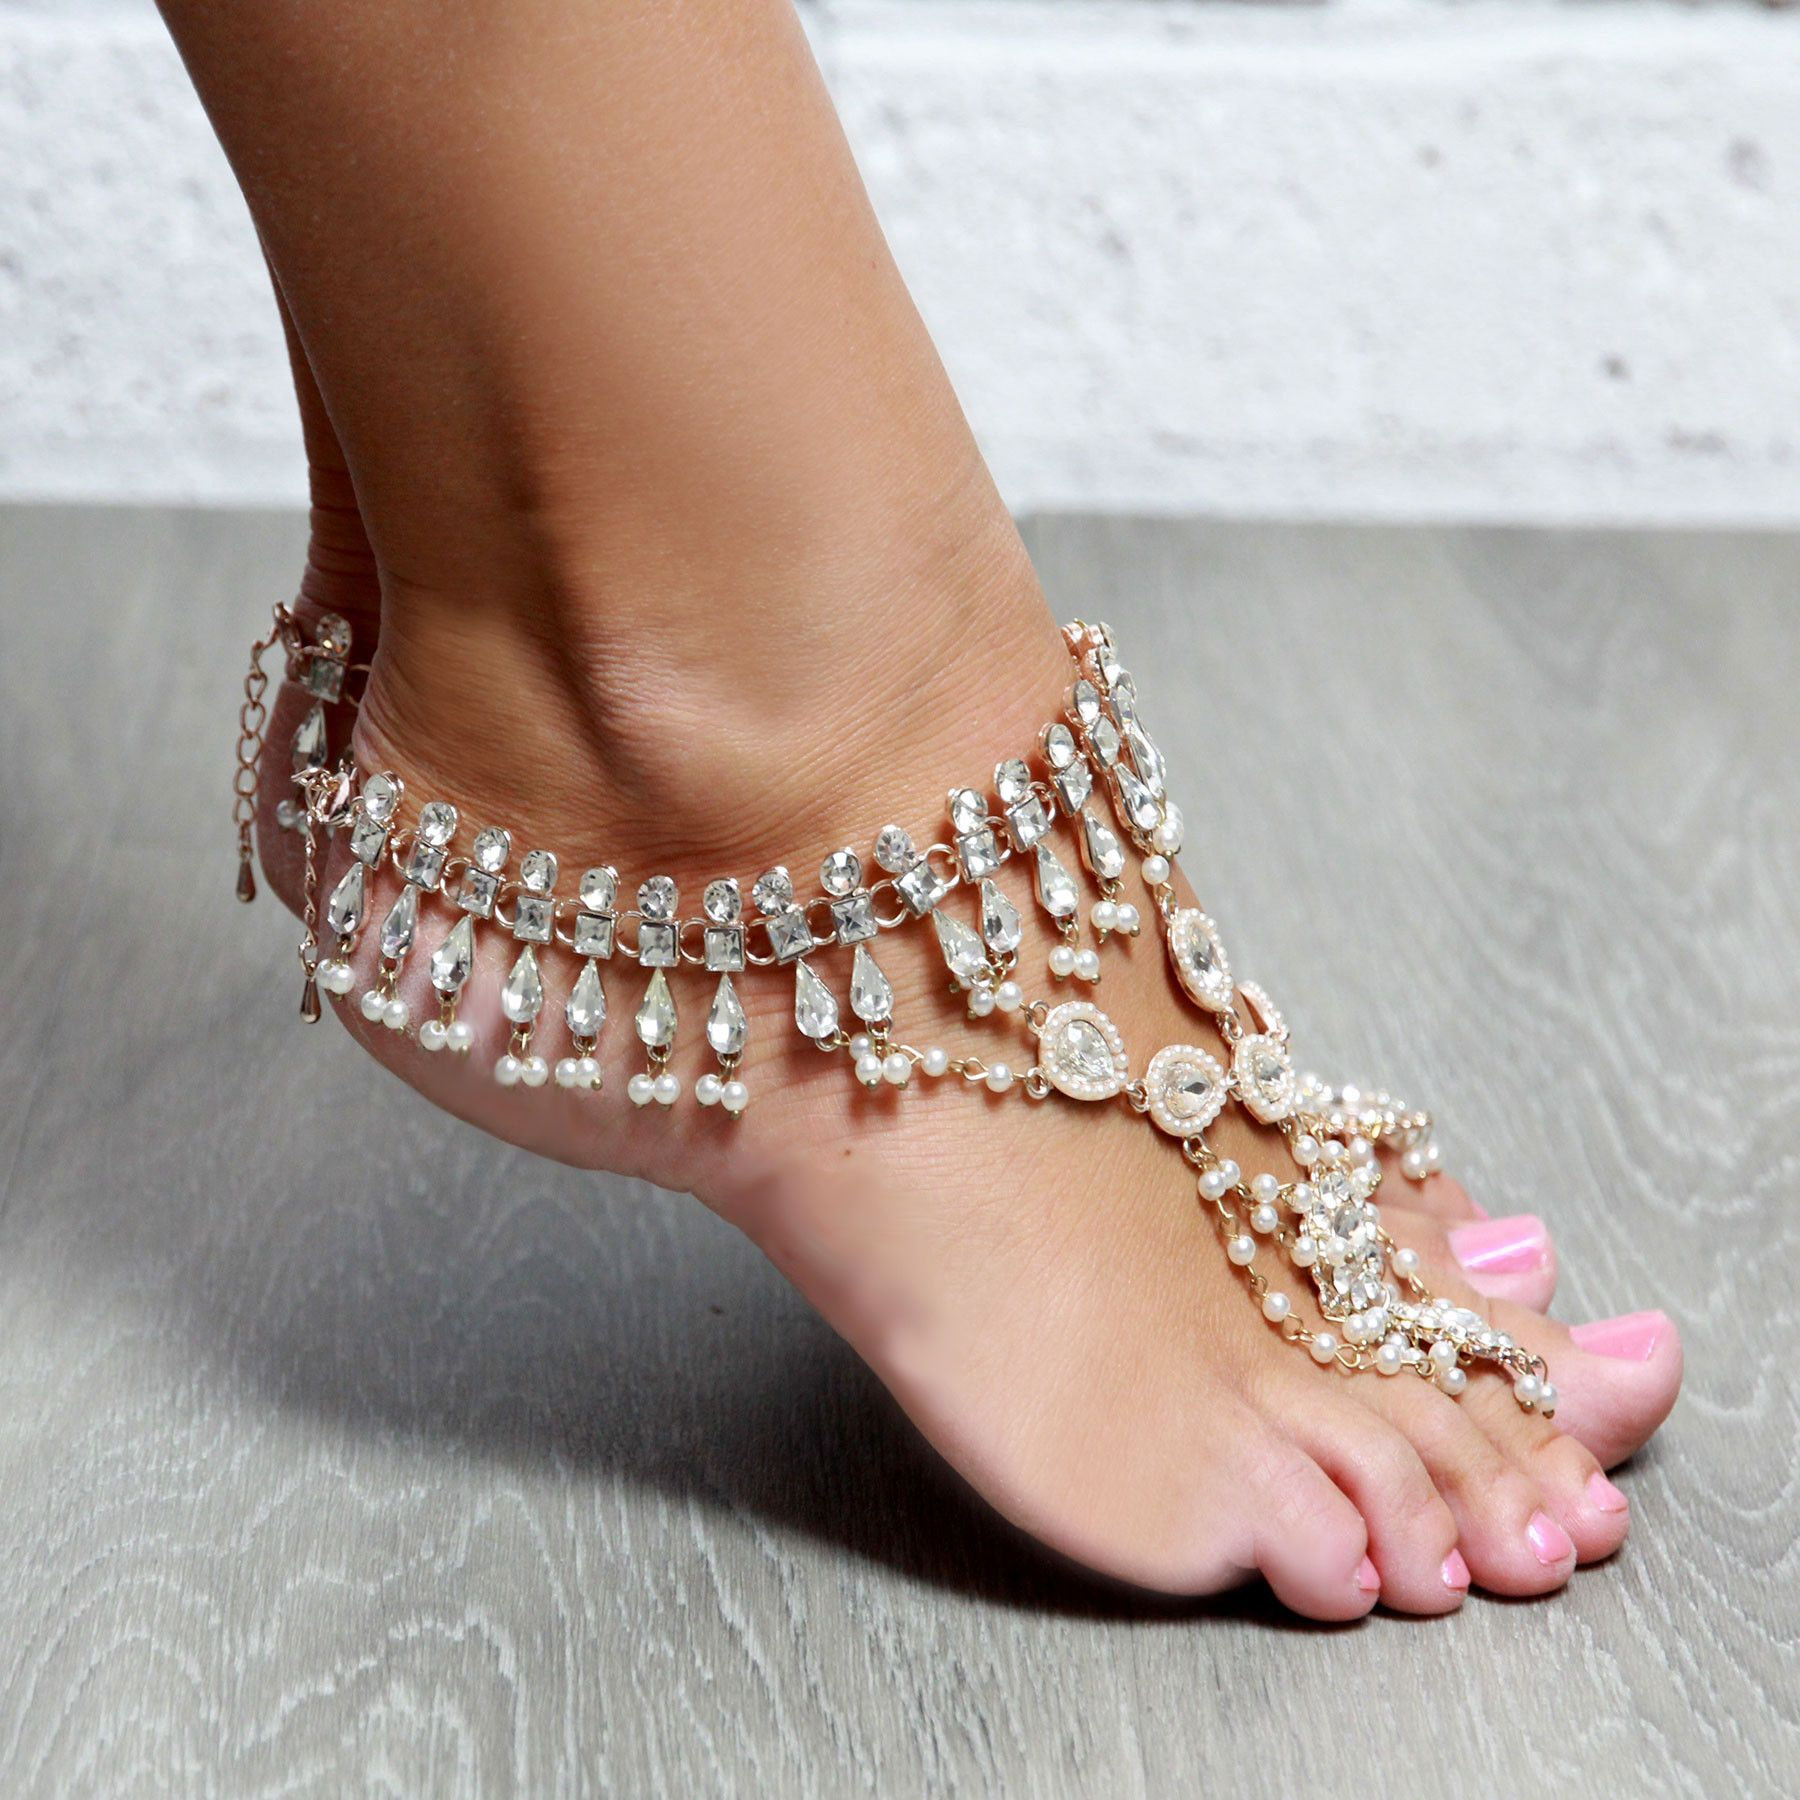 bracelets how video diy leather easy fancy anklets to anklet summer tutorial a bracelet godess make cute ankle